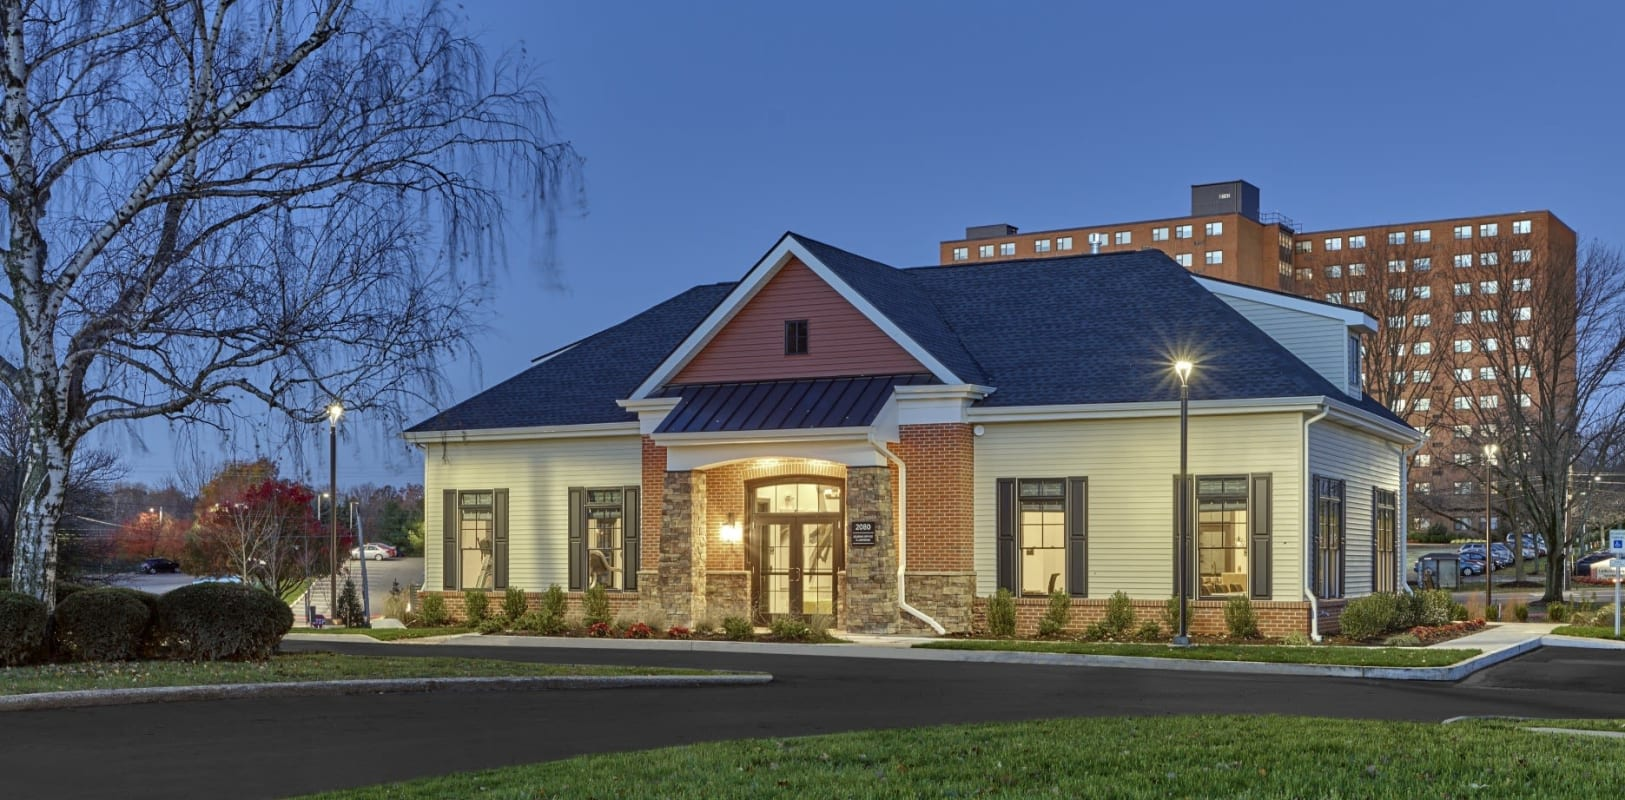 Our leasing office welcoming residents and their guests to The Mills at Lehigh in Bethlehem, Pennsylvania